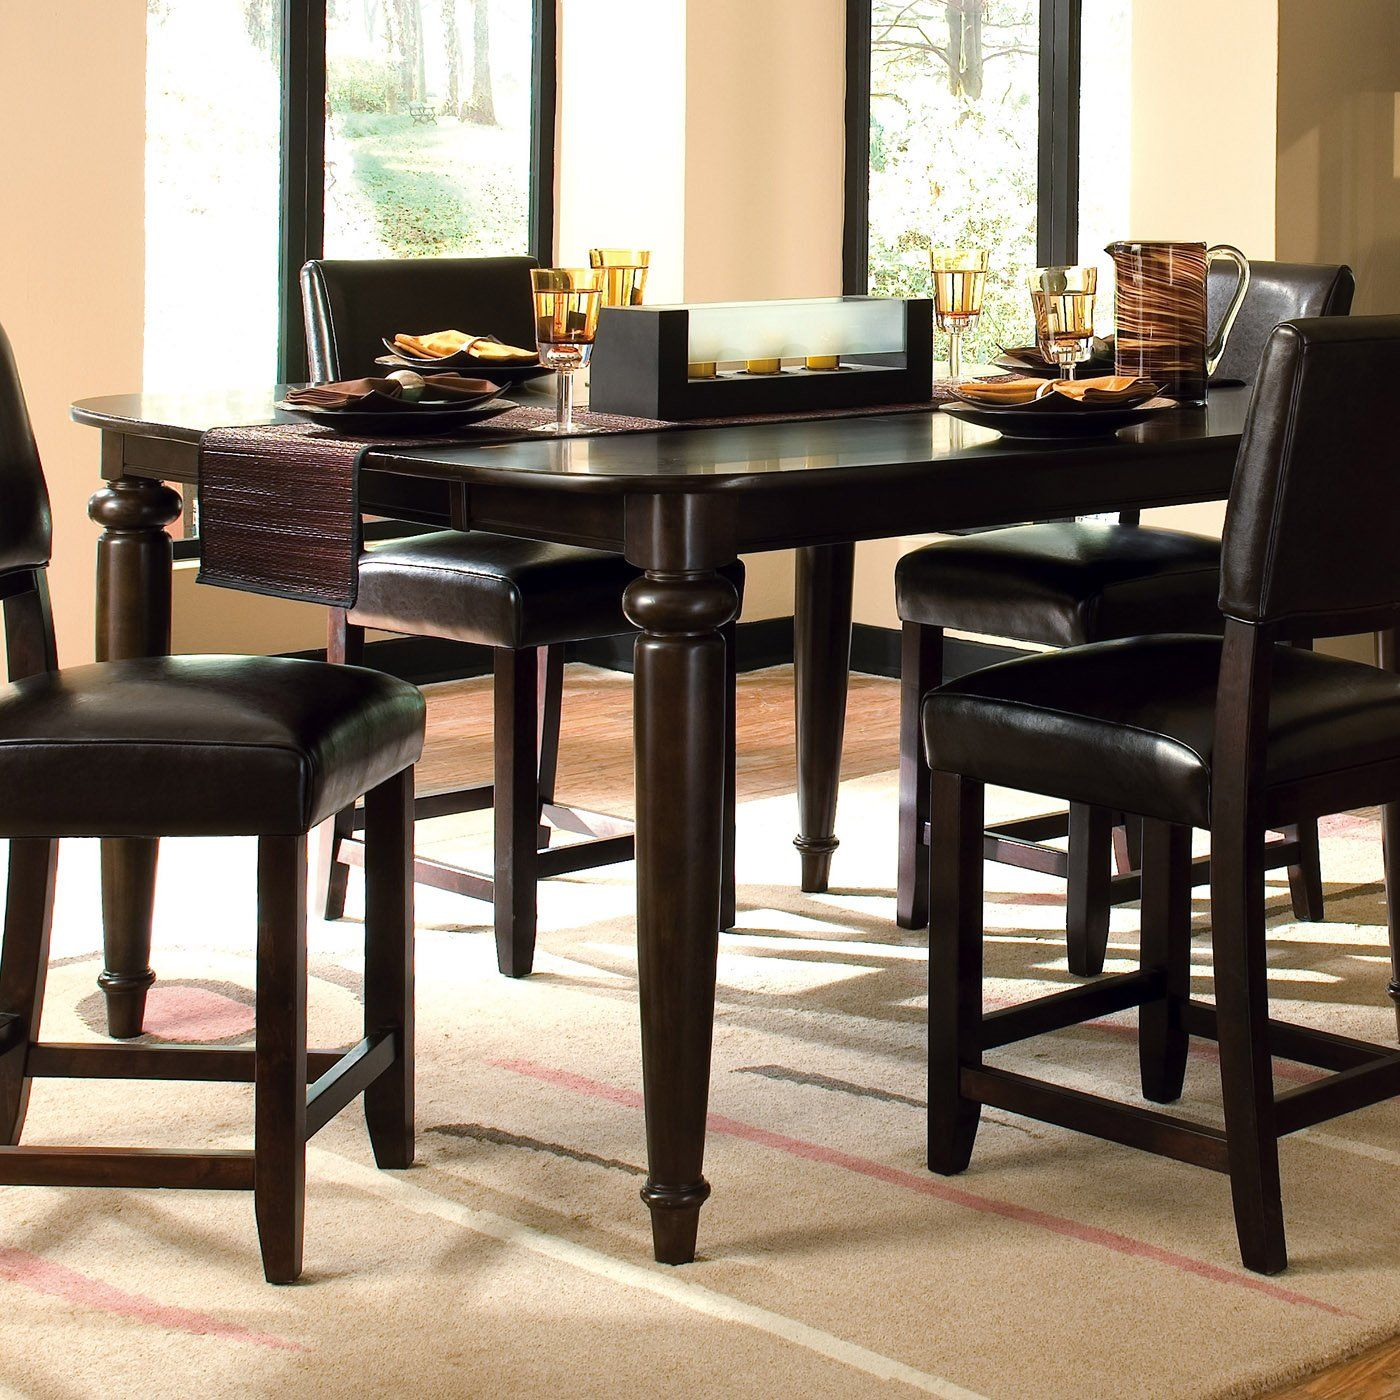 tall kitchen chairs Kincaid Furniture 46 Somerset Tall Dining Table Espresso